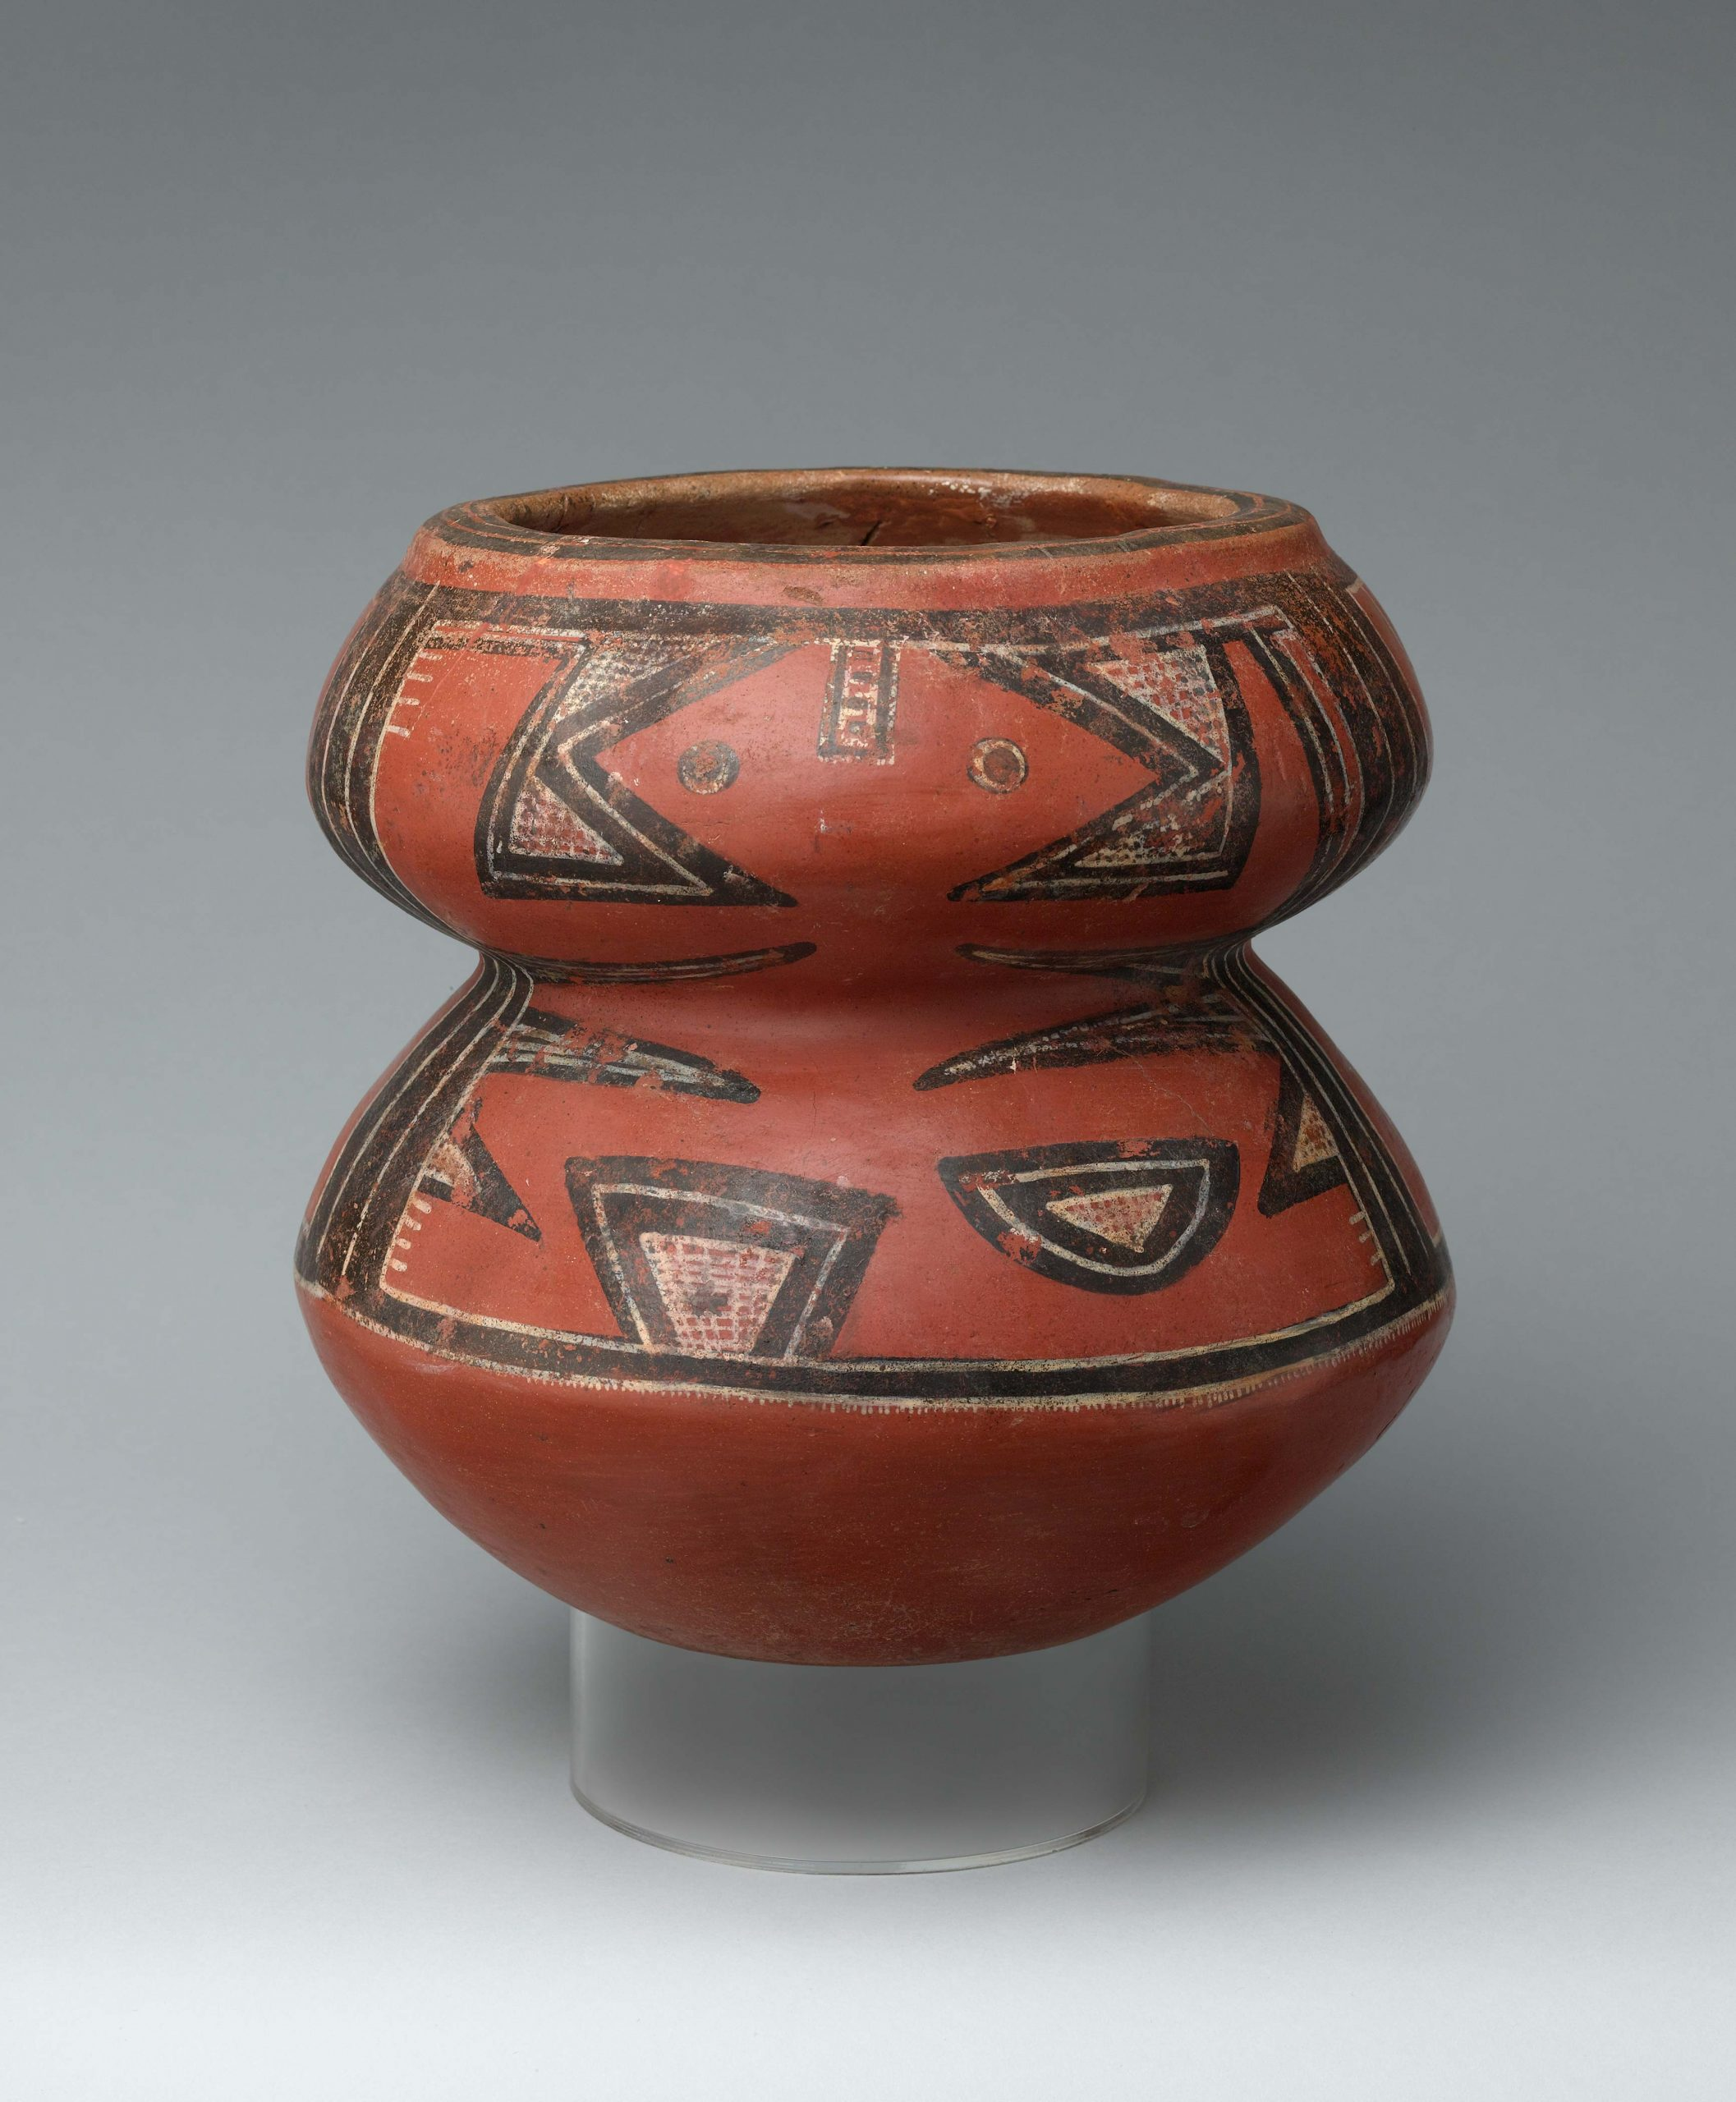 A jar painted in vibrant polychrome representing a human and/or animal.